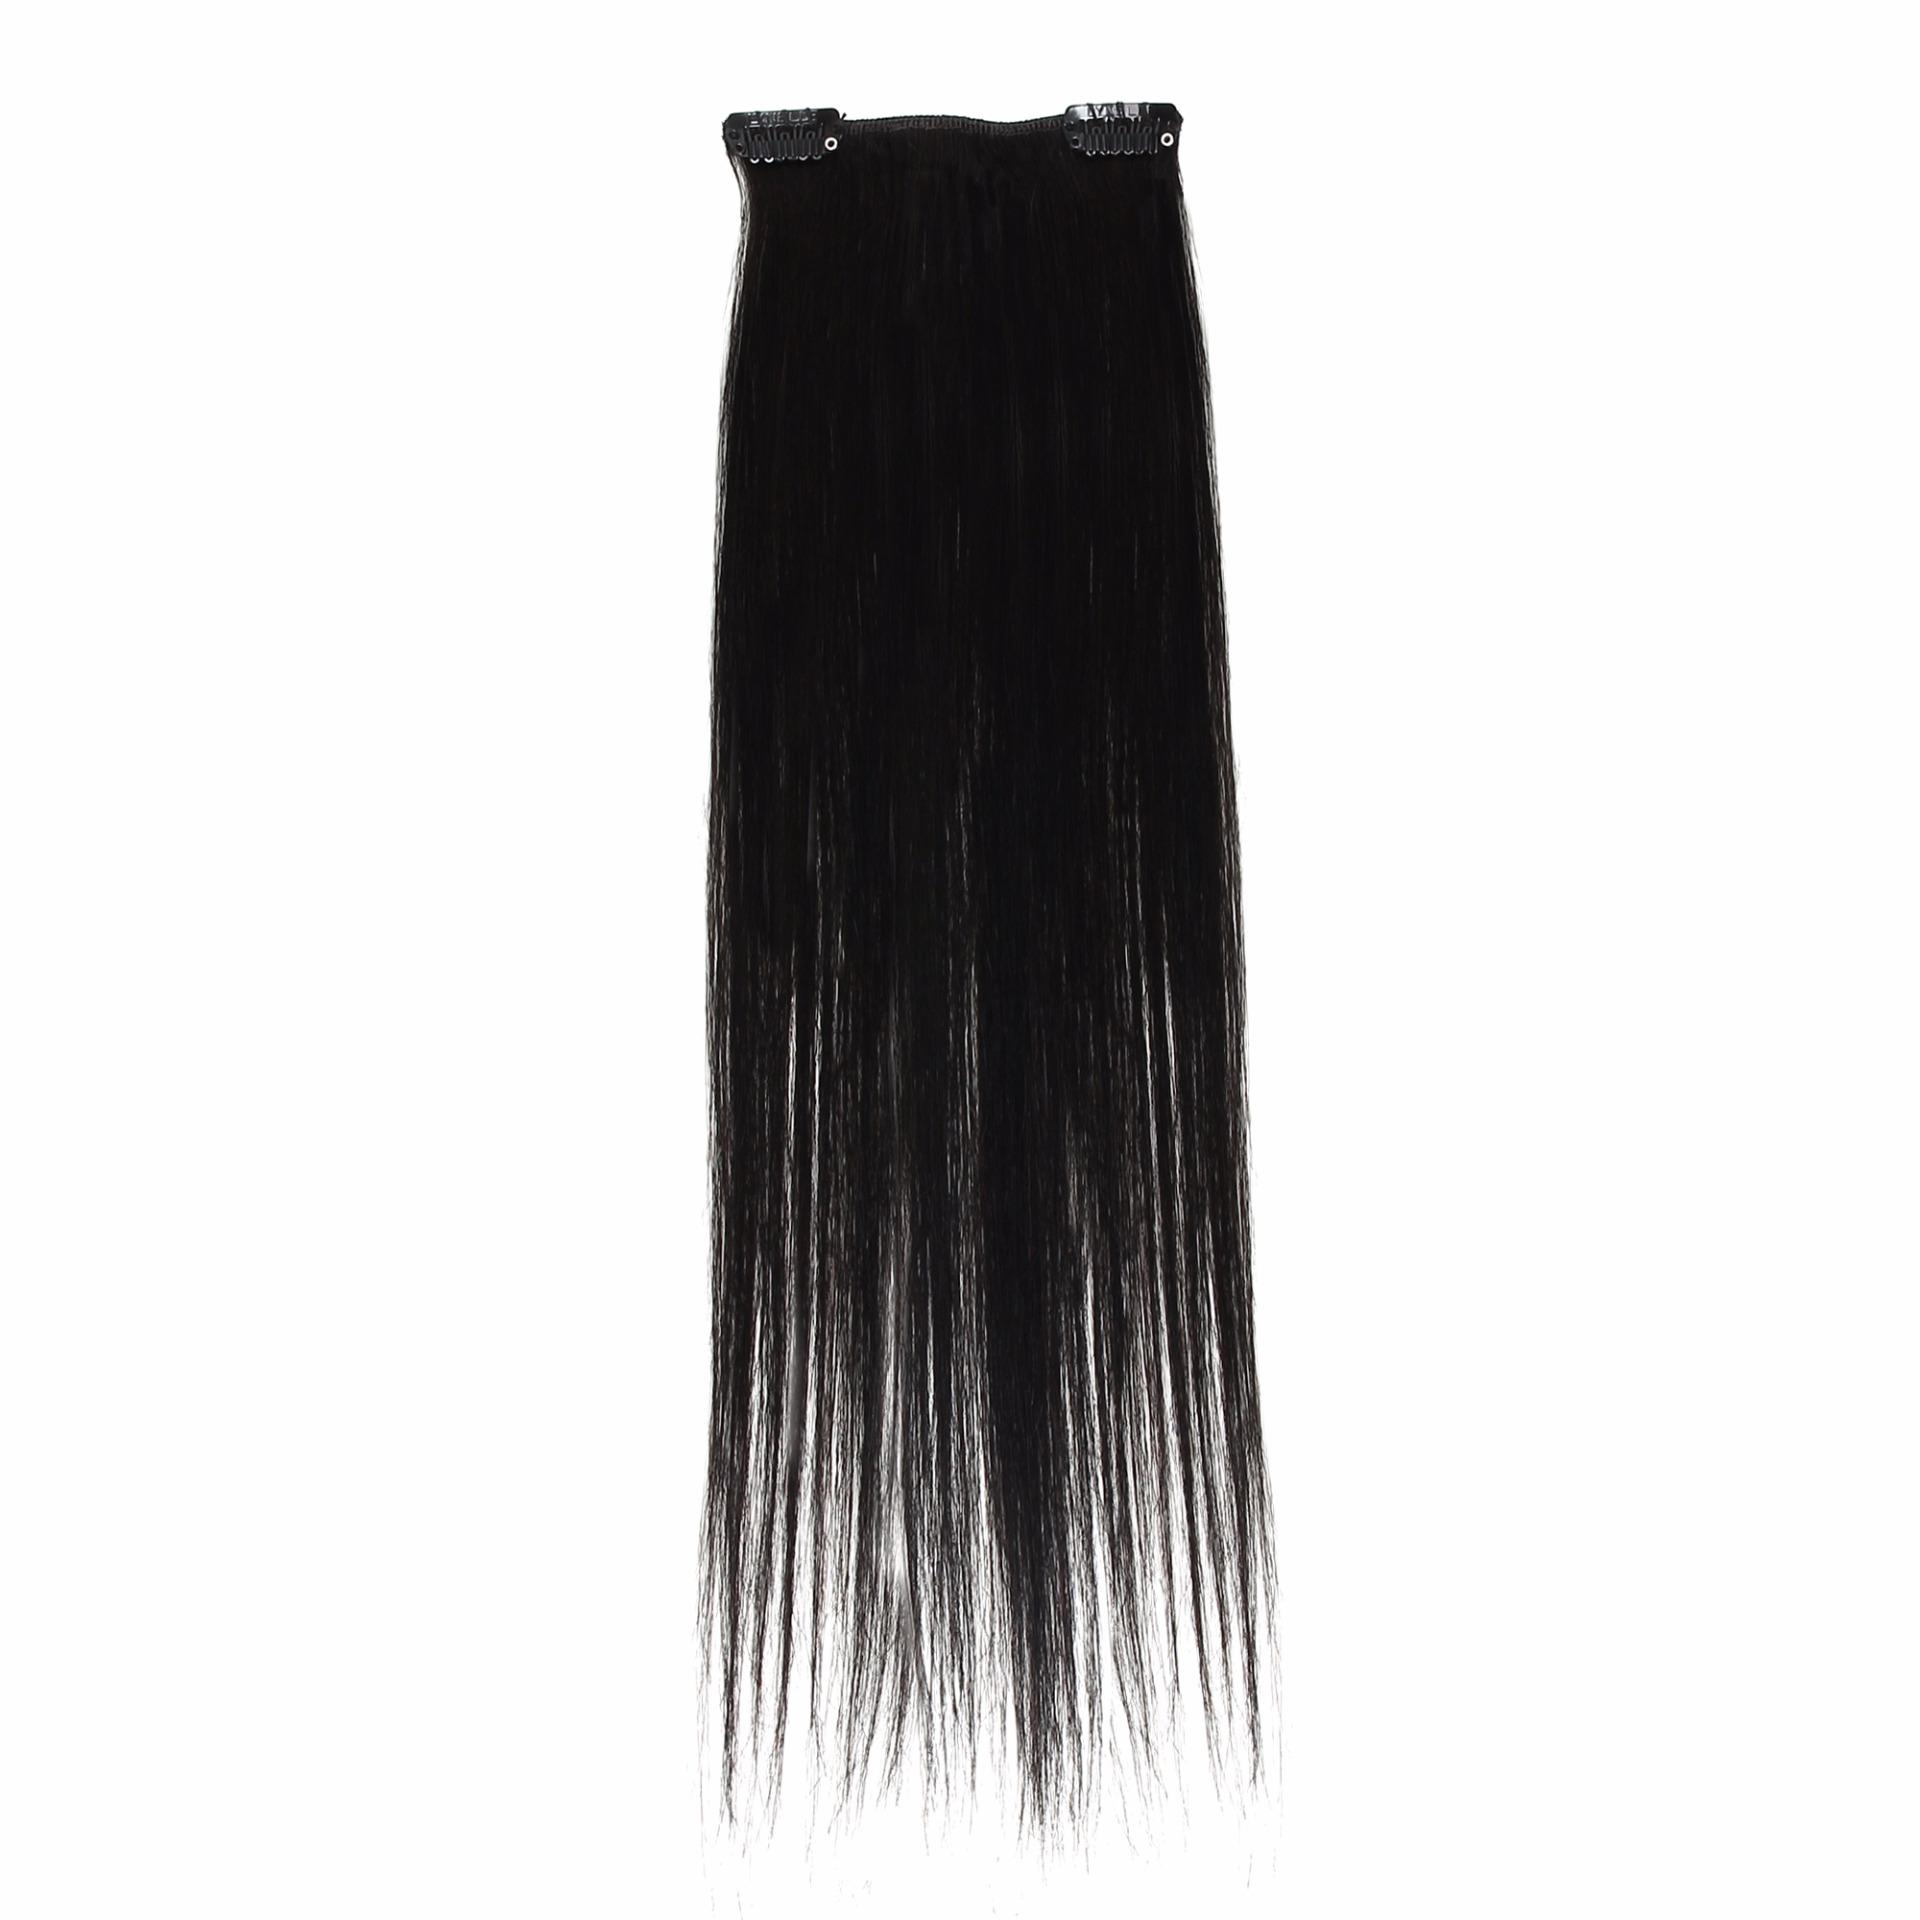 Philippines Keira Clip On Hair Extensions 16 Long 2 Clips Black